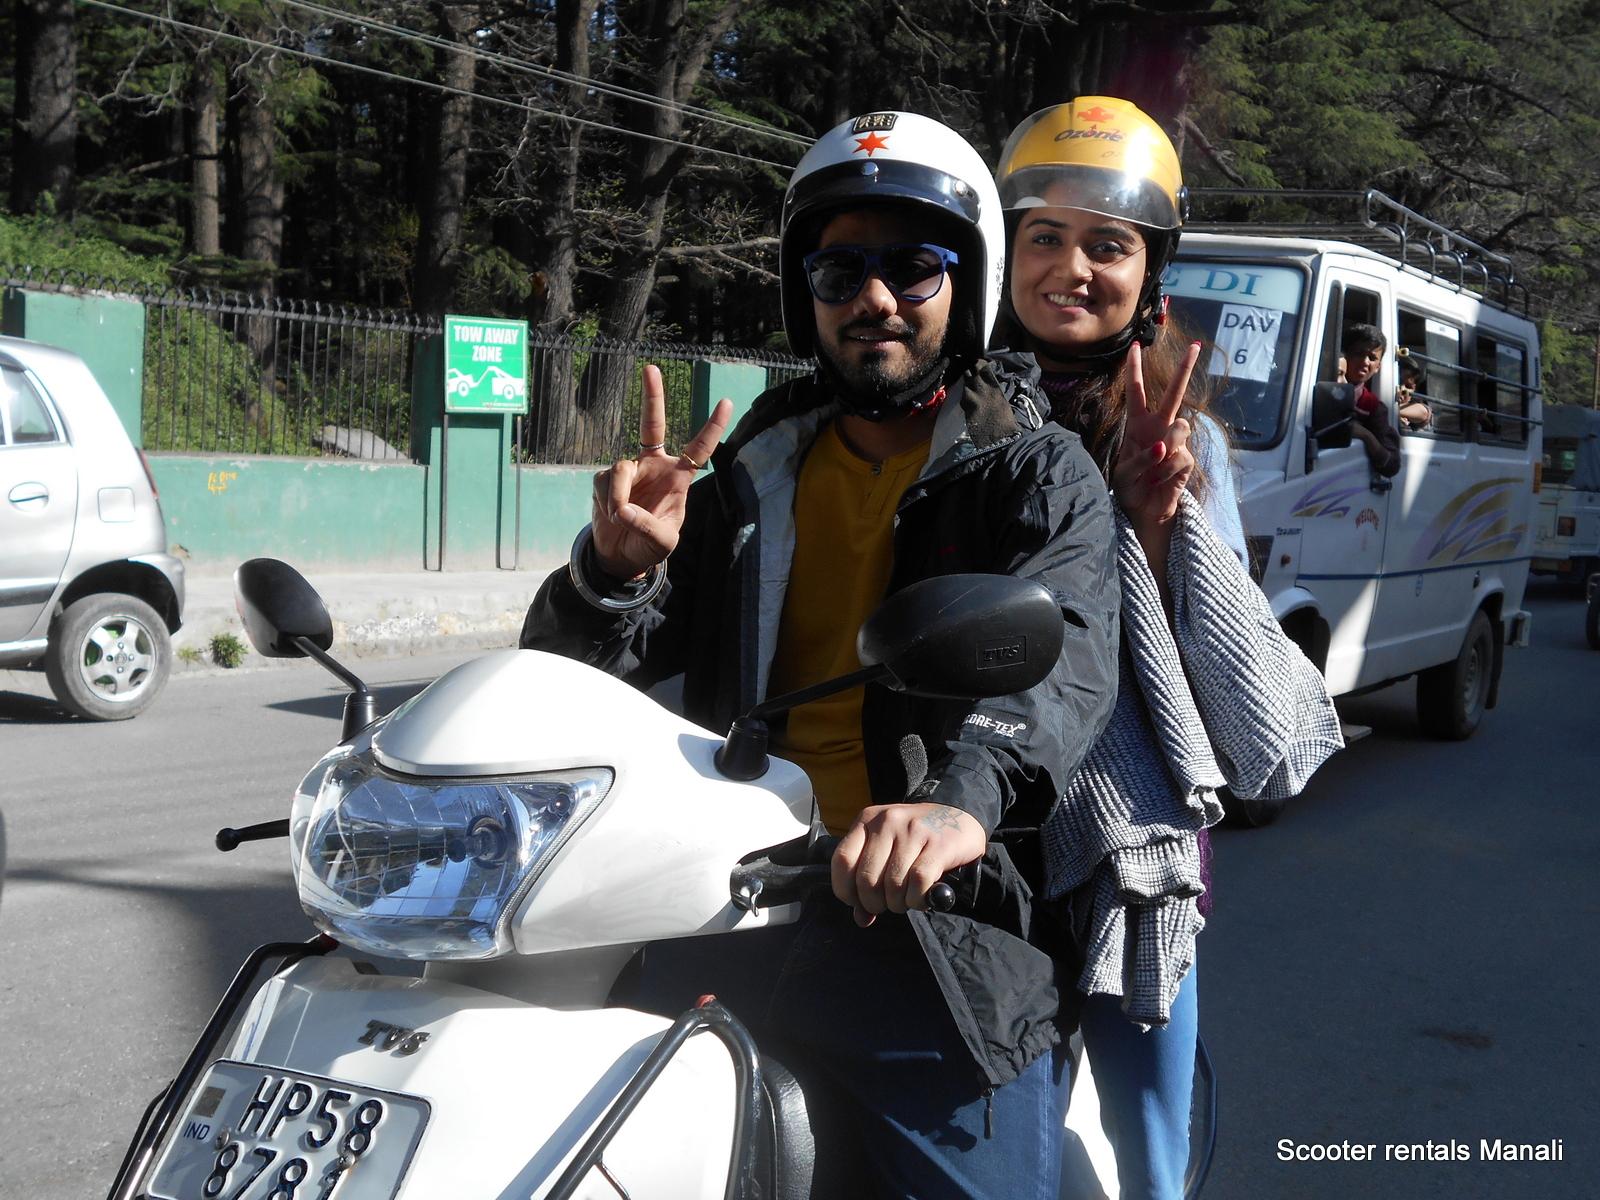 manali-scooter-rental